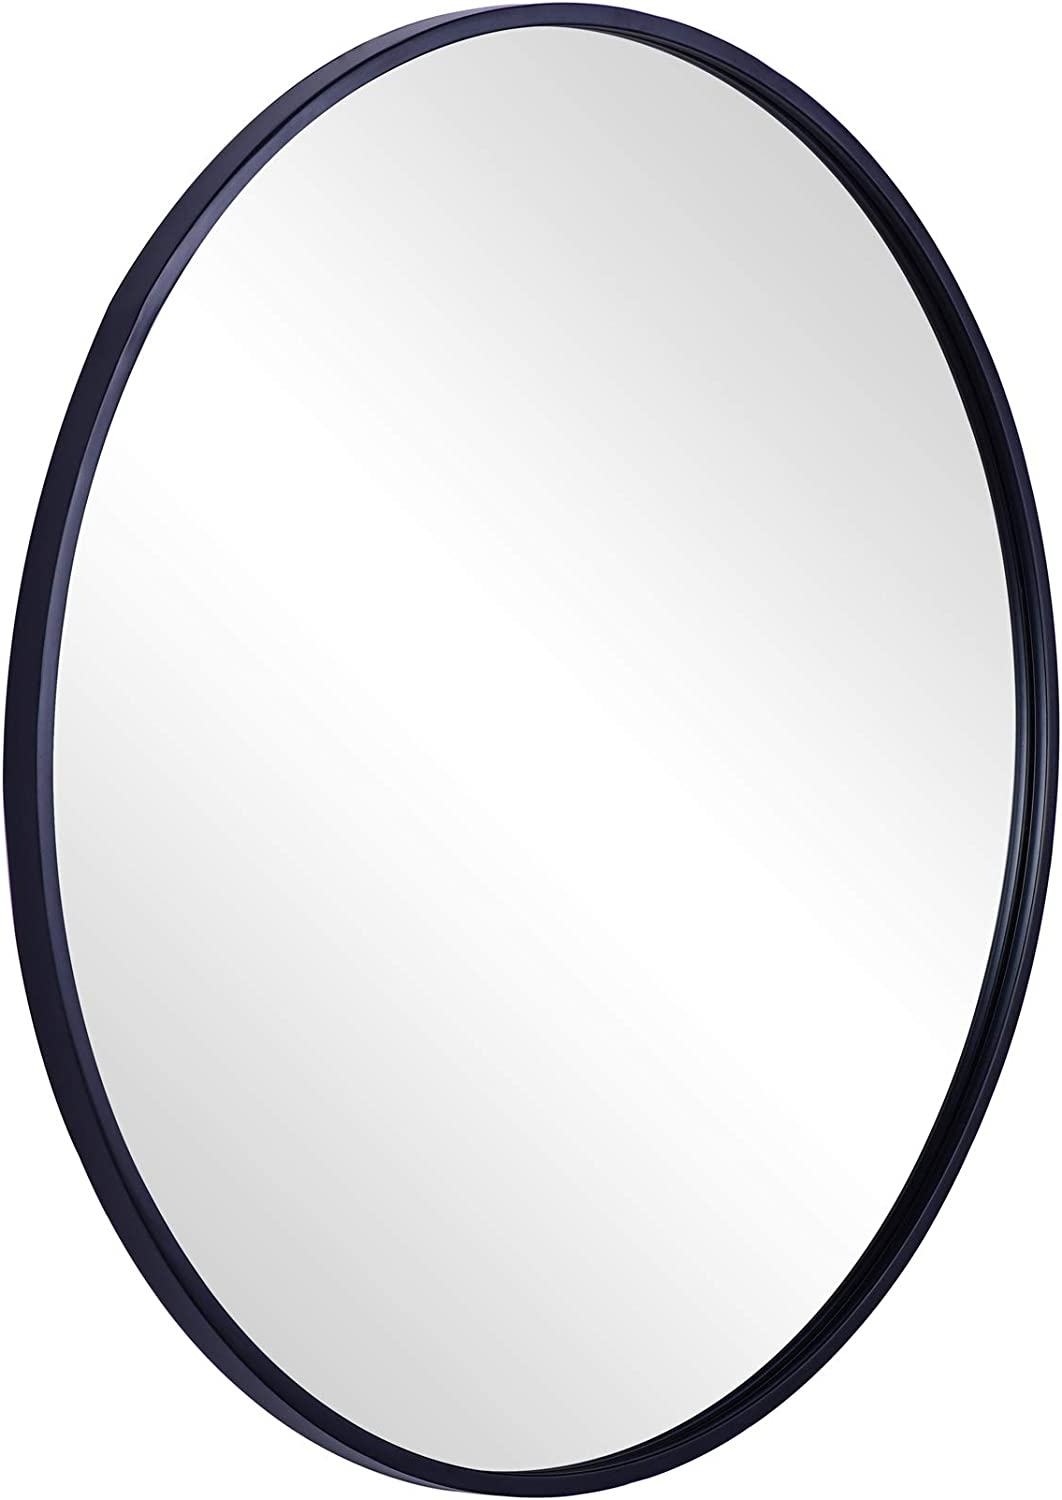 """CHIC MODE Ornate Accent Wall Mirror Elegant and Decorative Black Round Industrial Rustic Metal Framed, 32""""x32"""""""